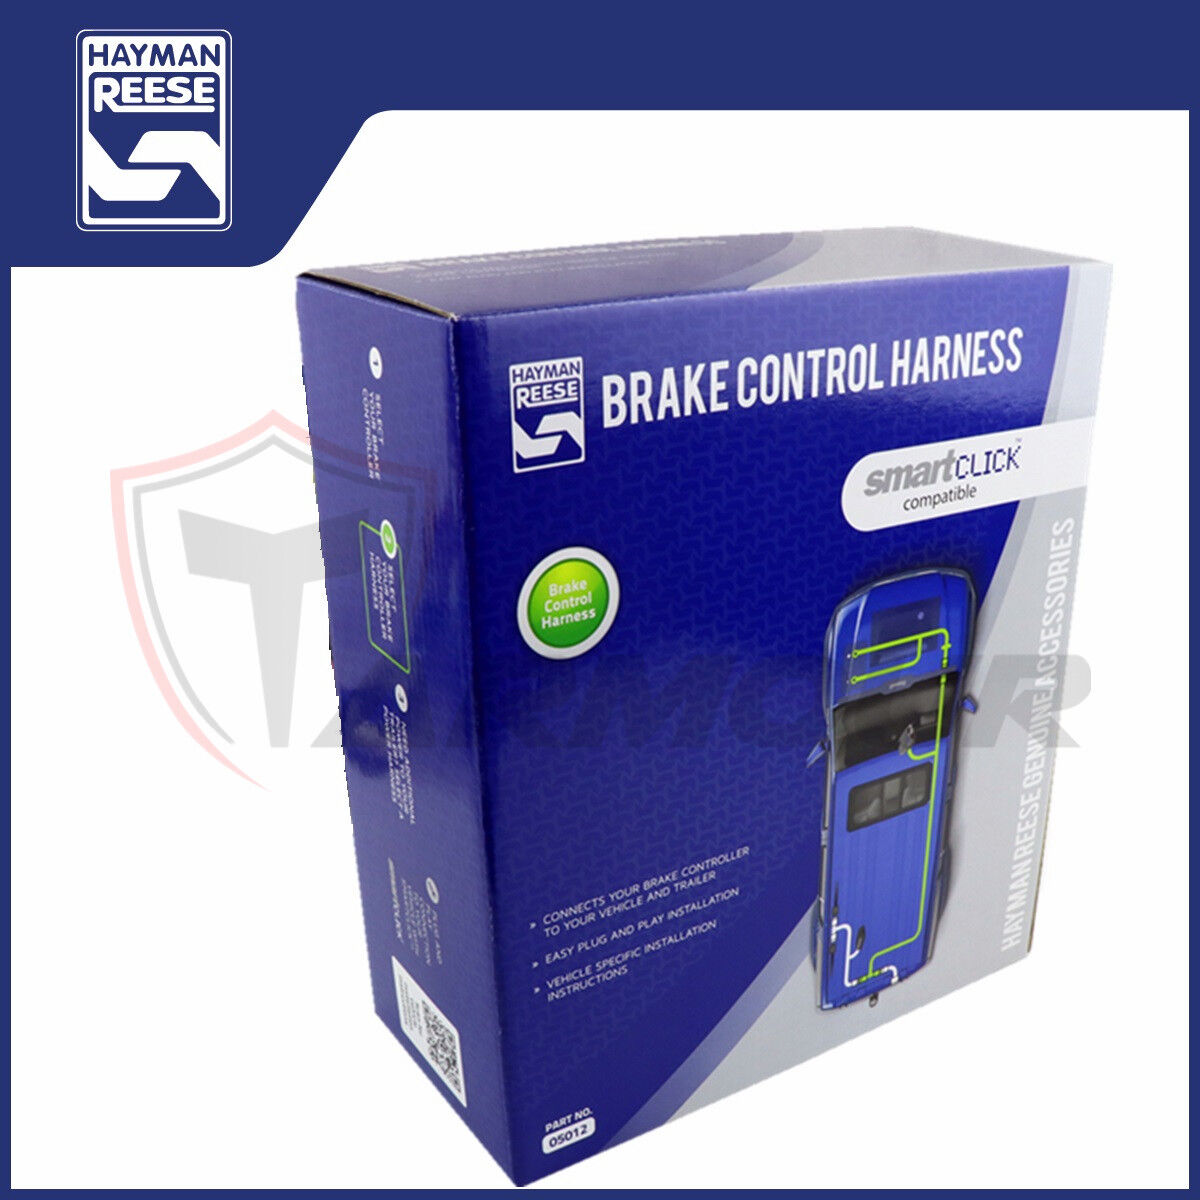 Hayman Reese 05012 Brakes Control Harness Ebay Electric Brake Controller Wiring Norton Secured Powered By Verisign